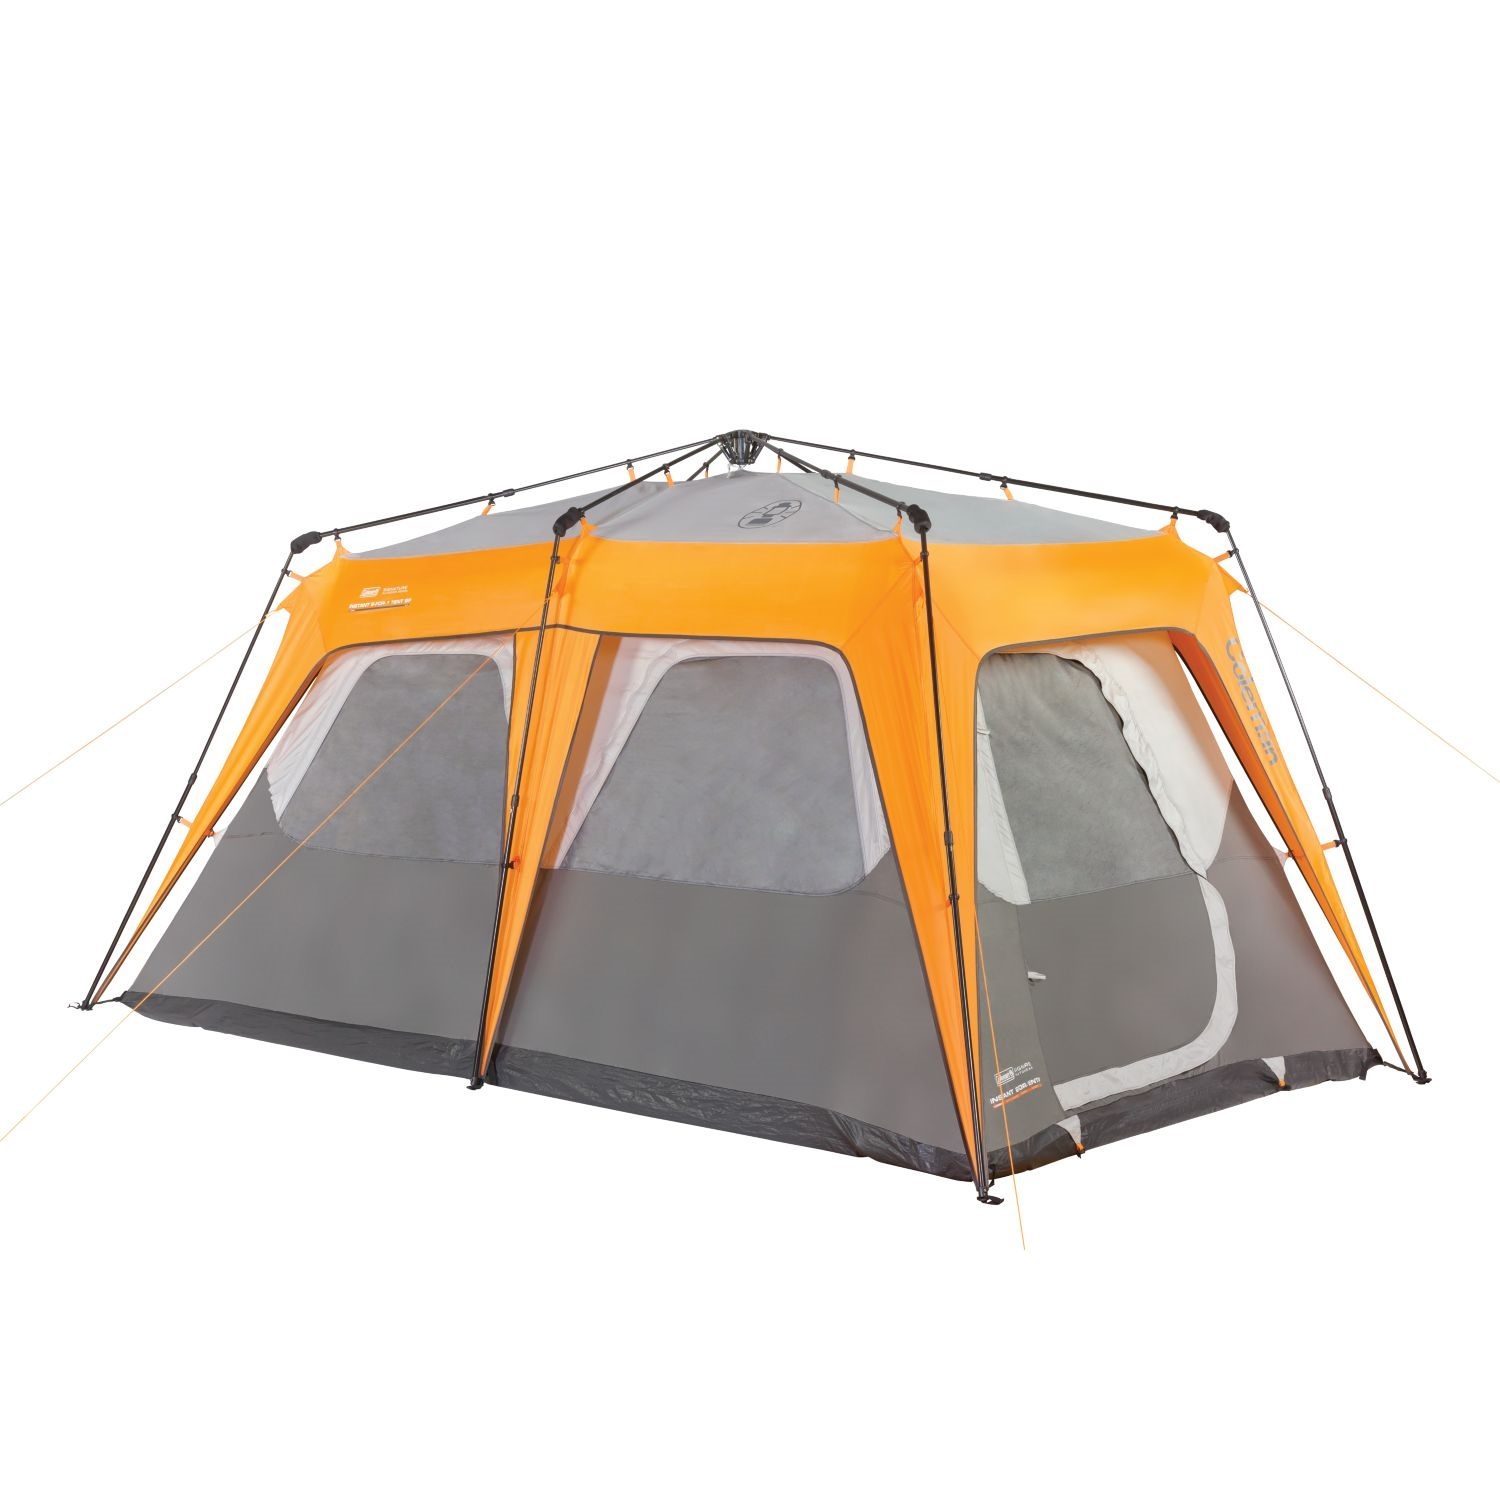 Instant Tent Shelter : Coleman shelter tent instant for person signature